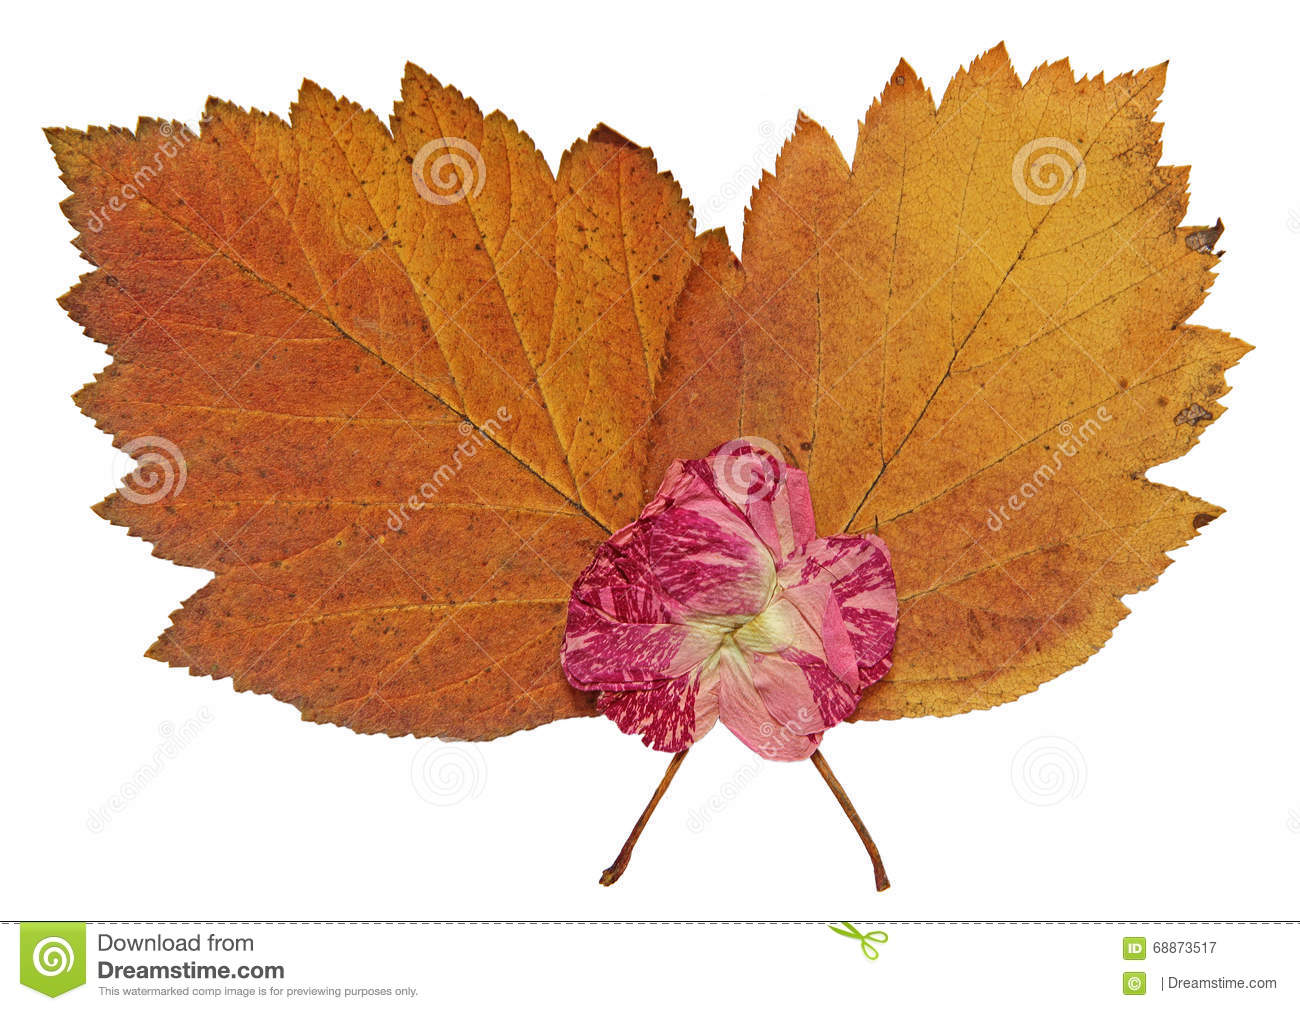 How to scrapbook dried flowers - Dried Fall Leaves Of Plants Flowers And Branches Isolated Elem